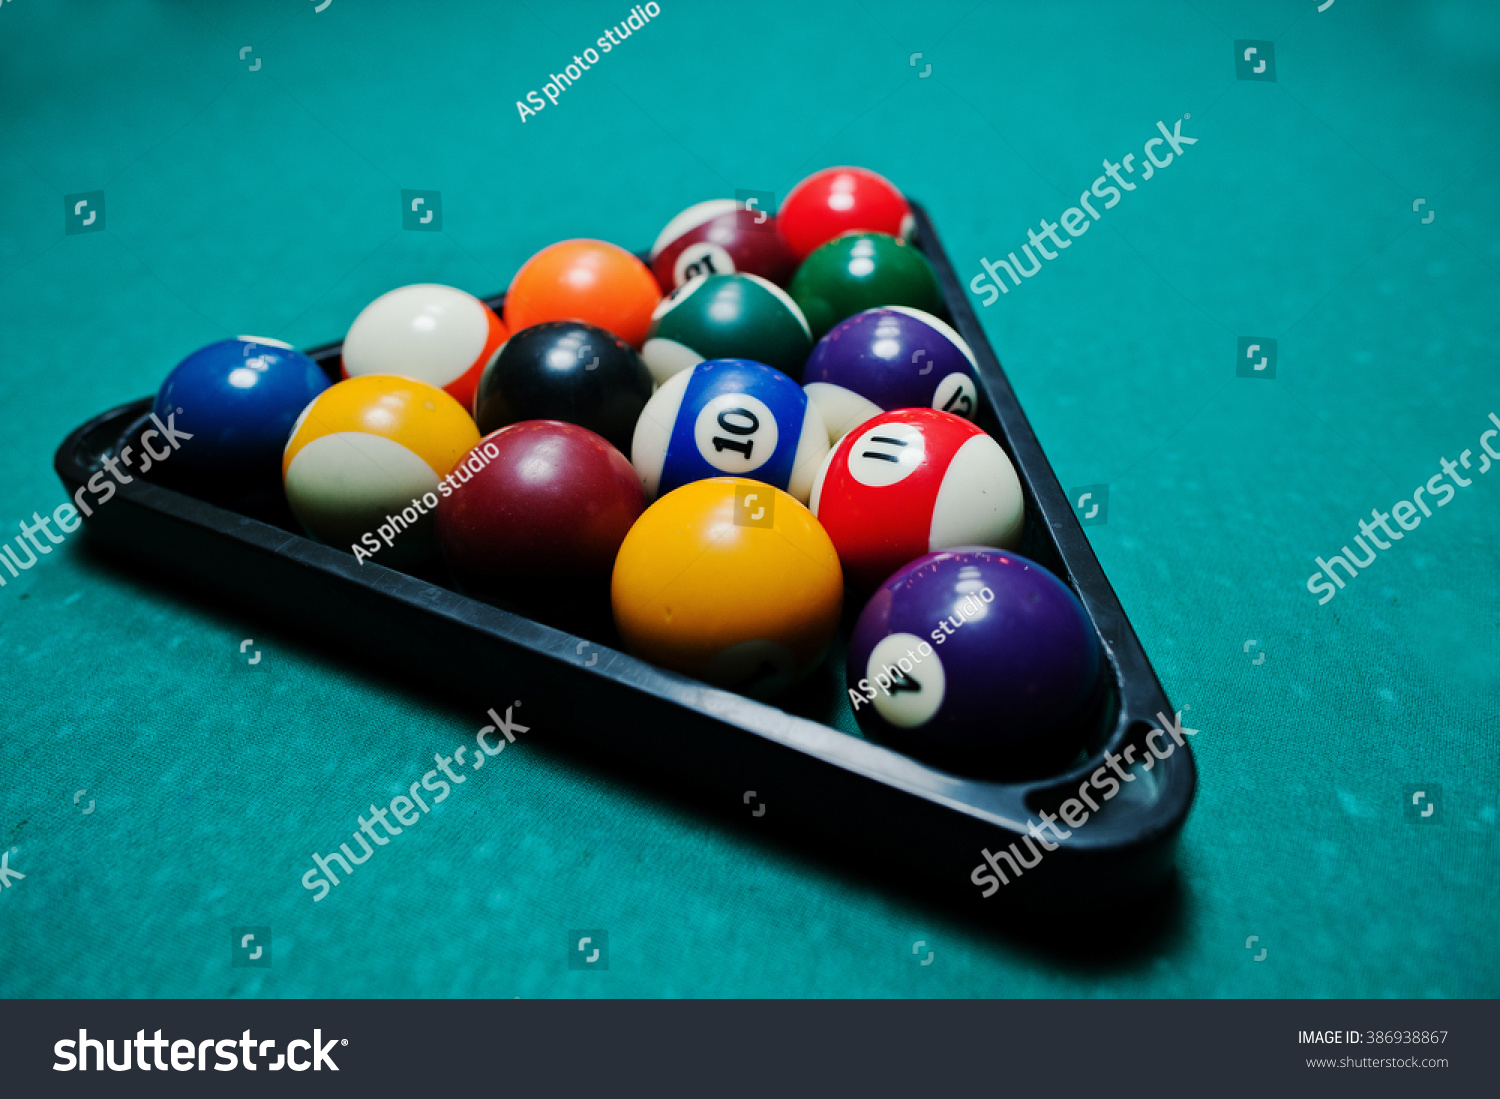 Billiard Balls In A Pool Table At Triangle